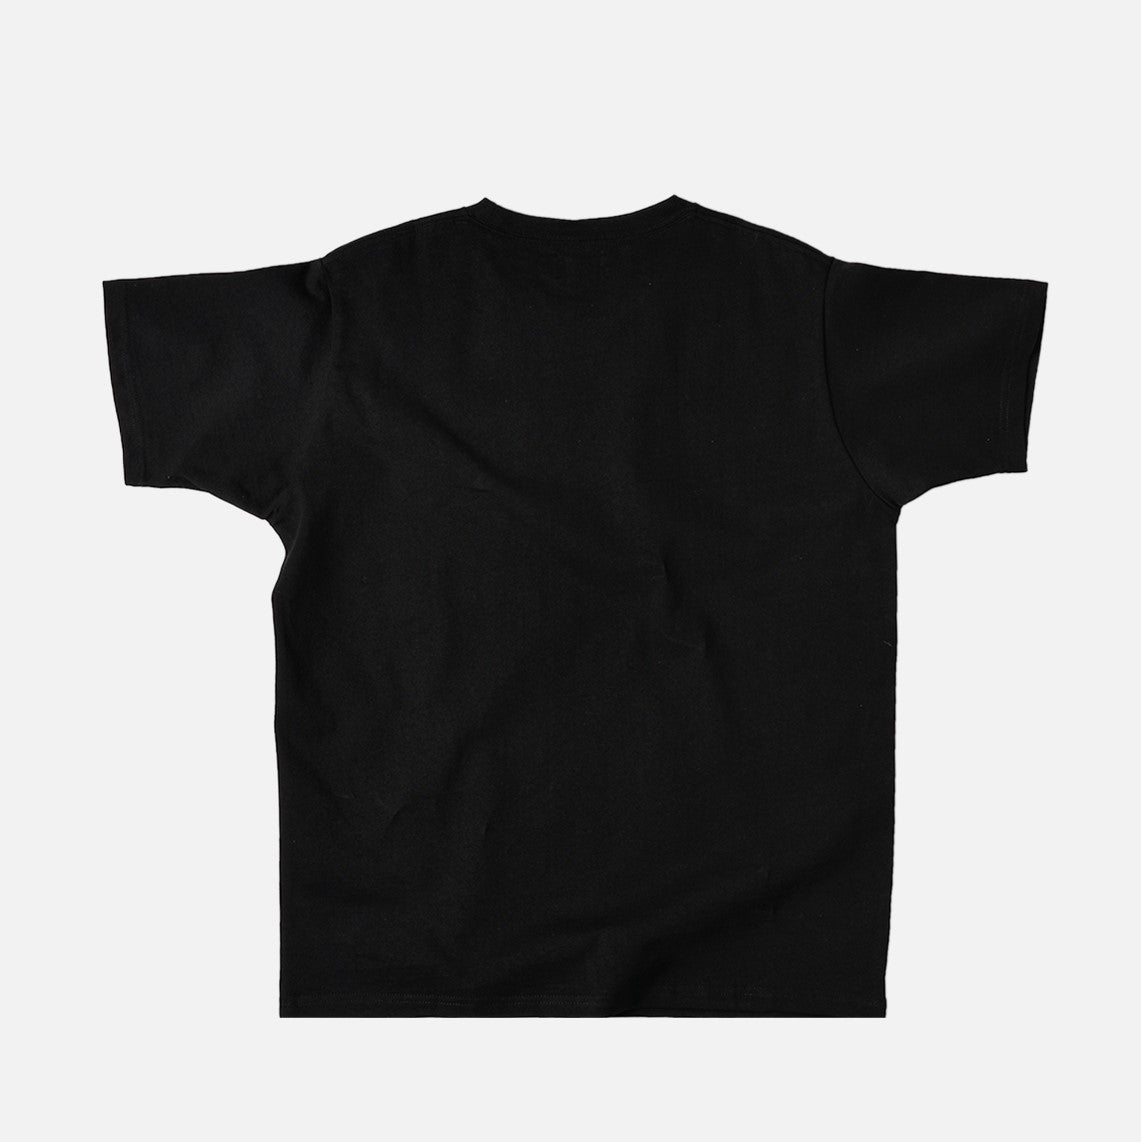 OUTLINE LOGO TEE - BLACK